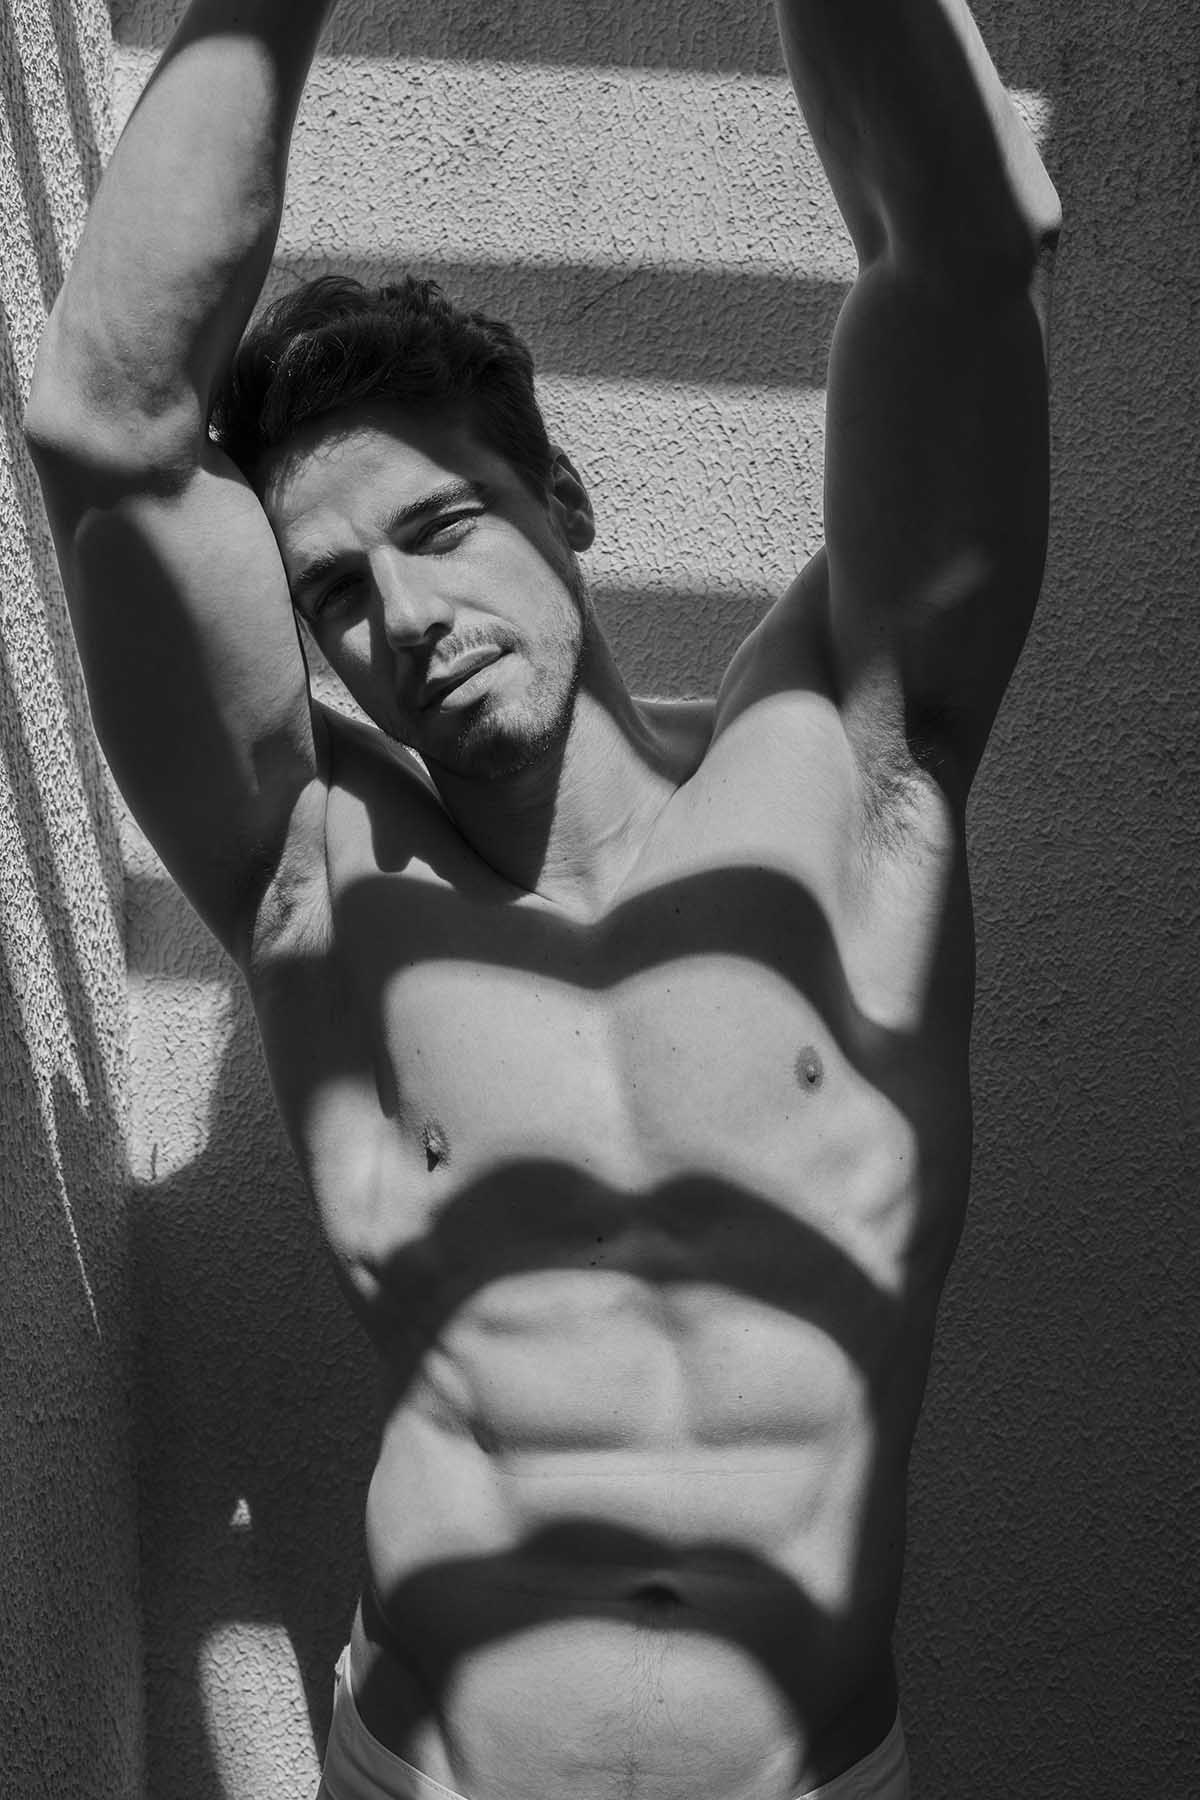 Matheus Nagel by Lucas Silvestre for Brazilian Male Model